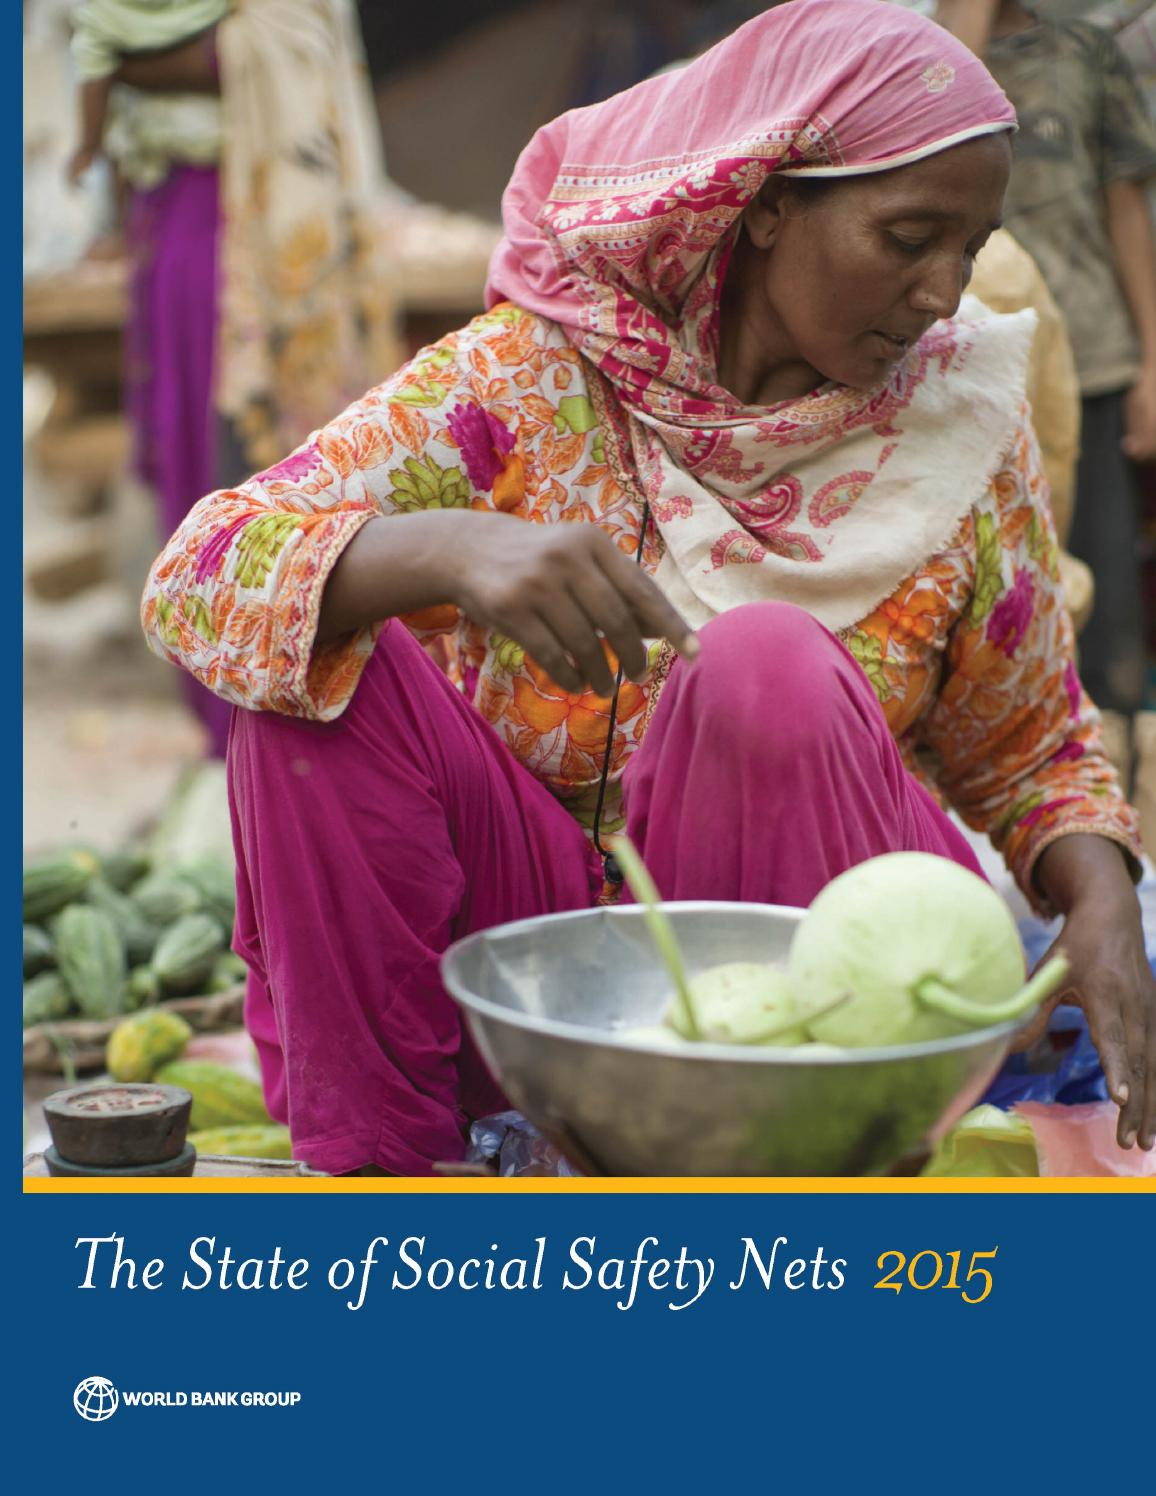 The State of Social Safety Nets 2015 by World Bank Group ...